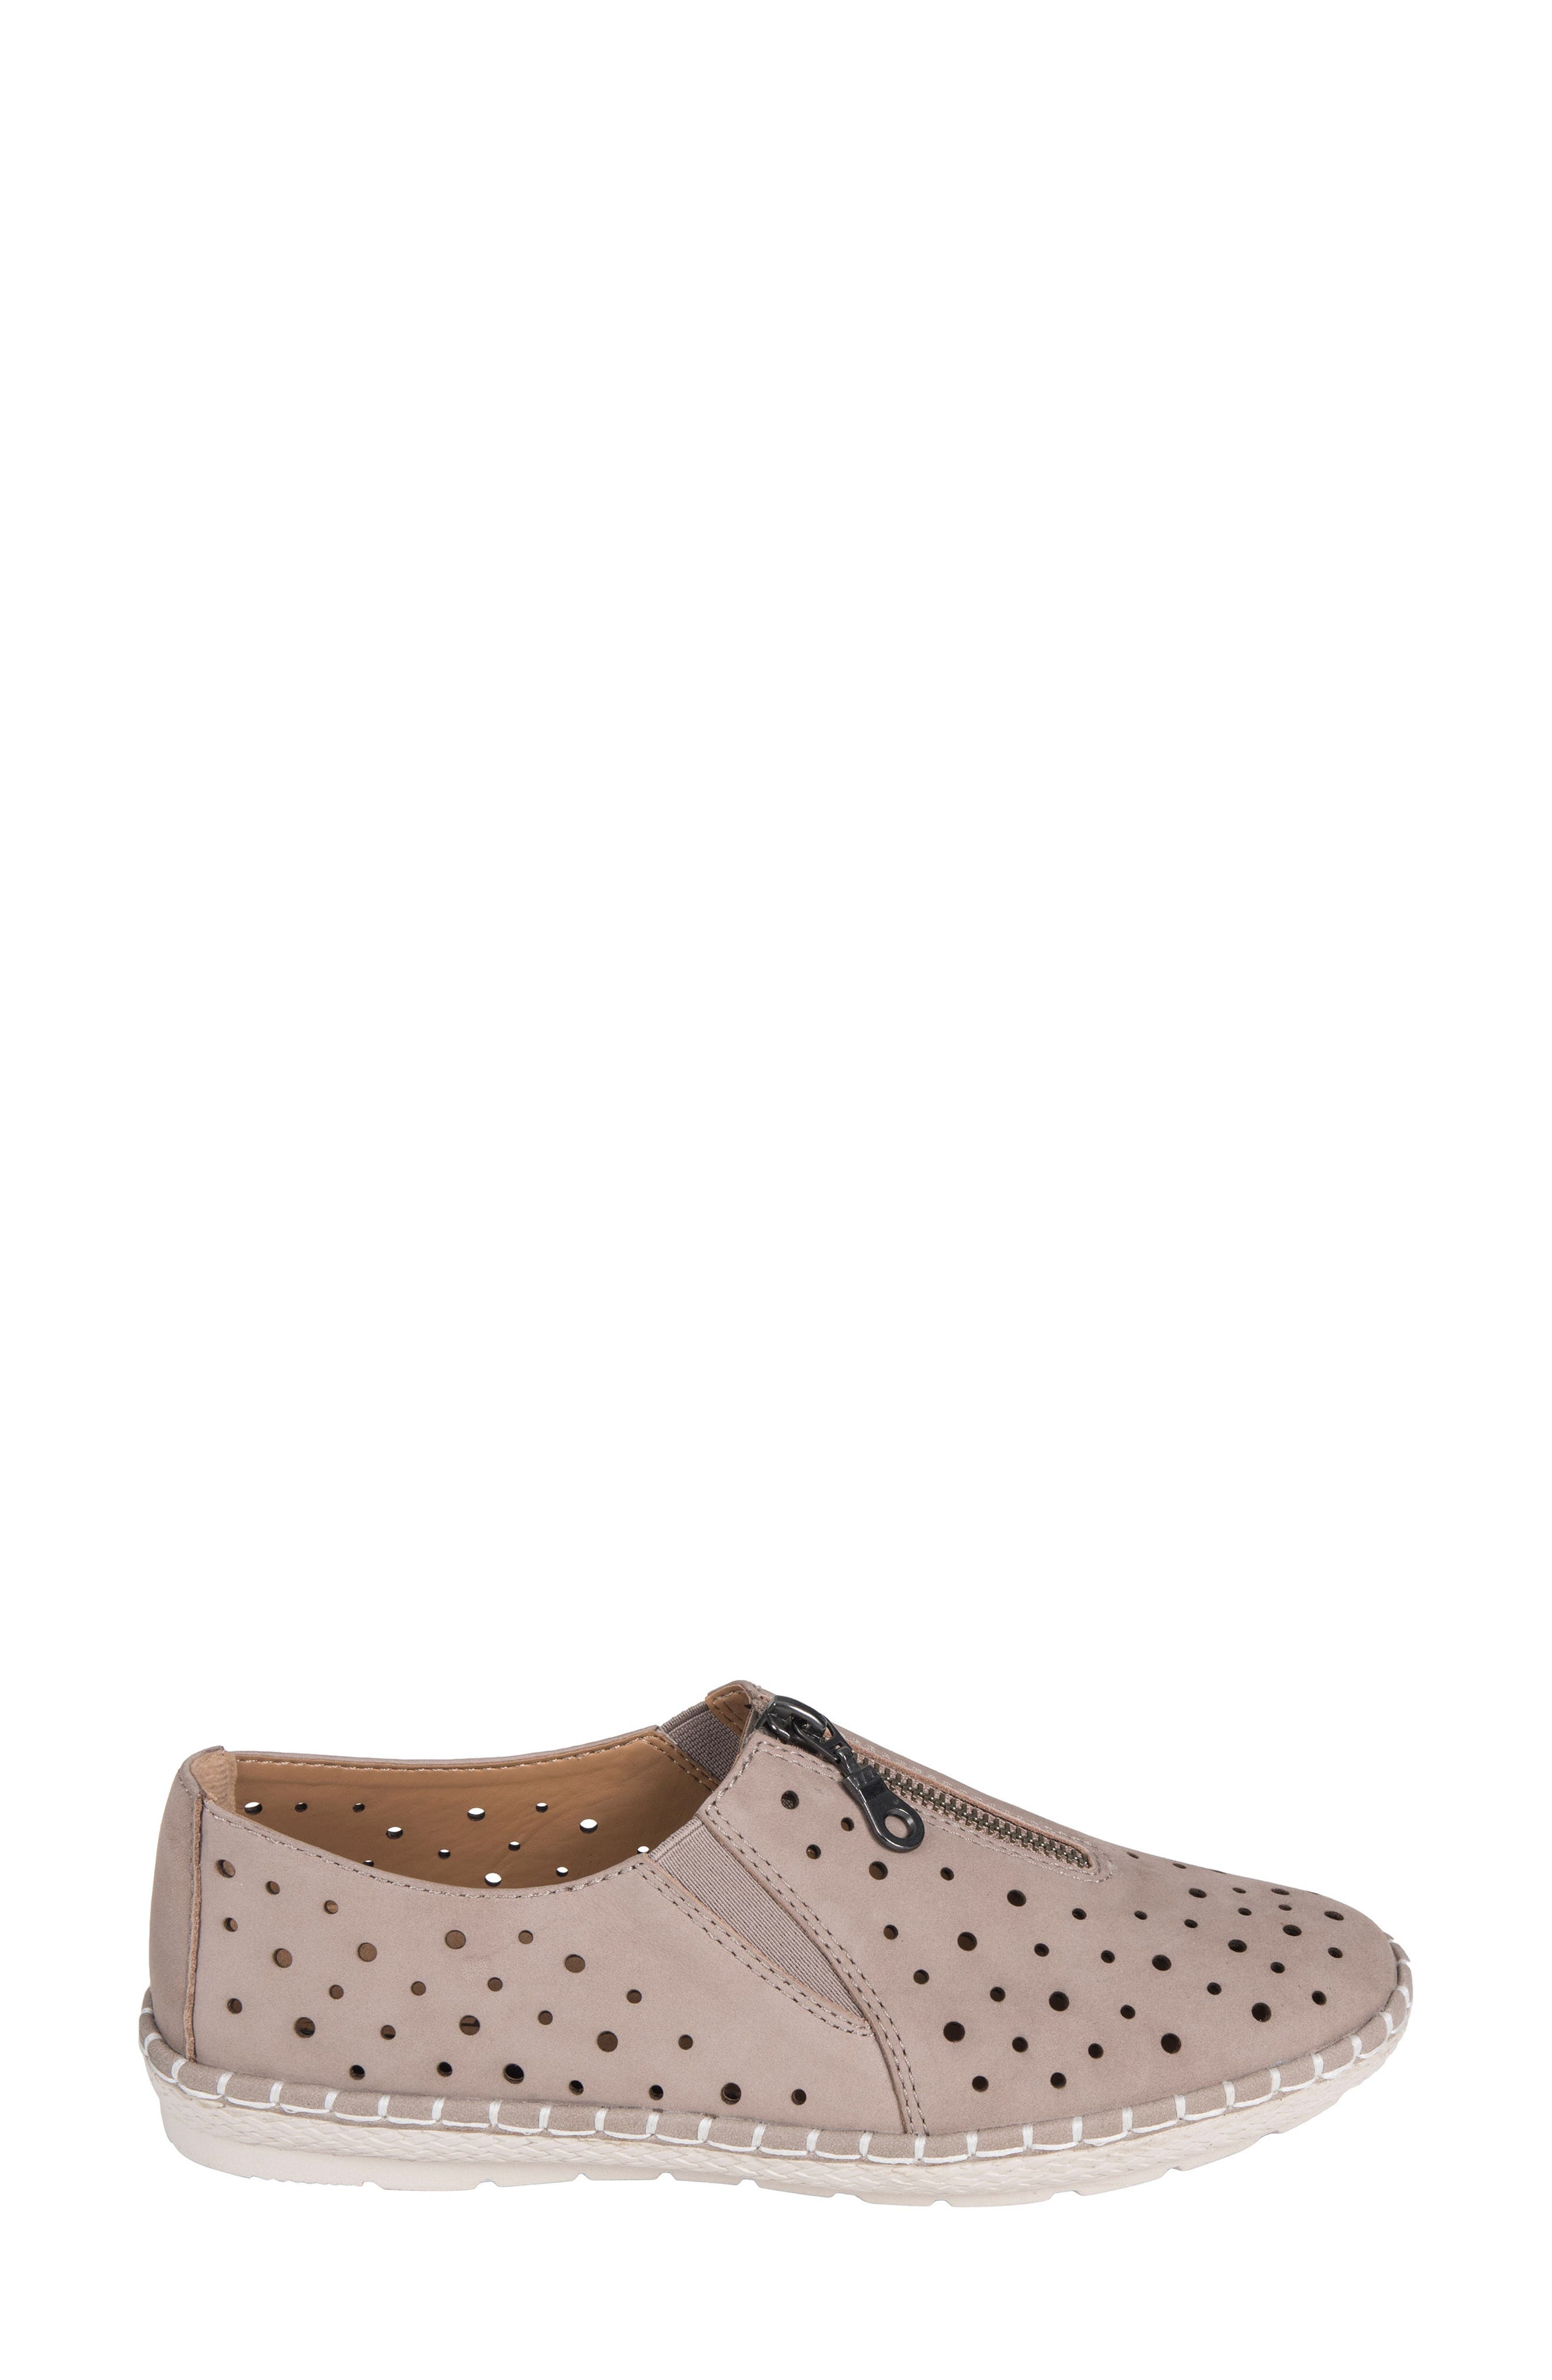 Callisto Perforated Zip Moccasin,                             Alternate thumbnail 3, color,                             TAUPE NUBUCK